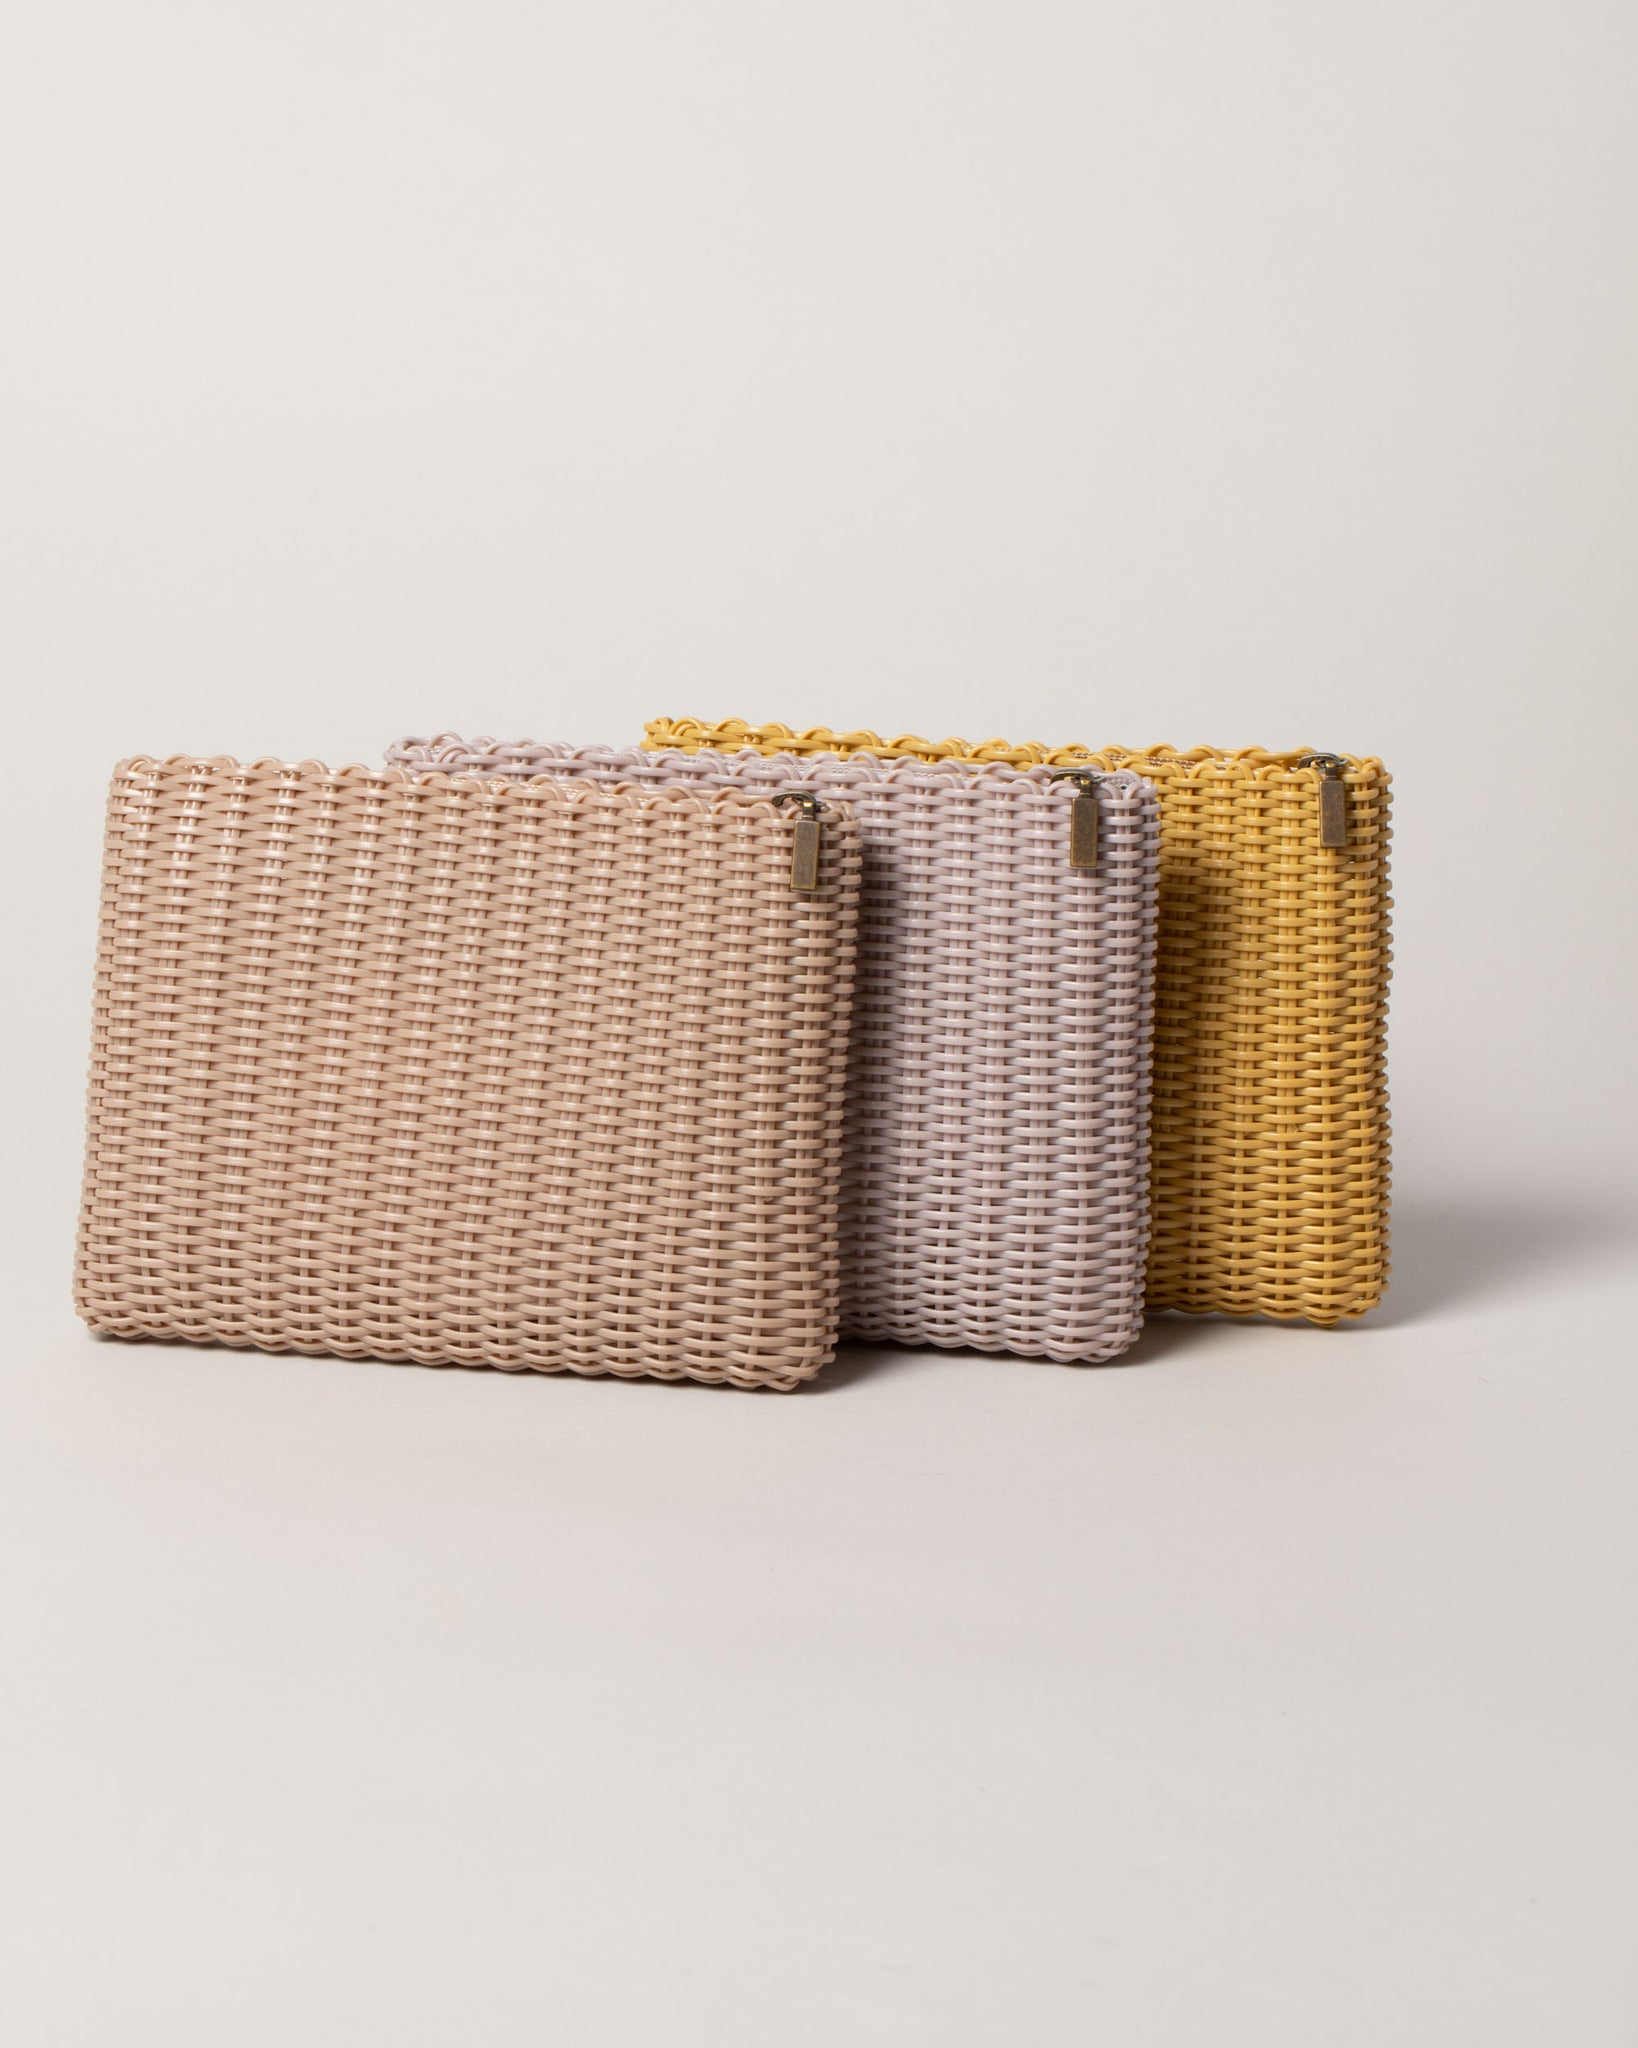 Small Clutches Group of 3